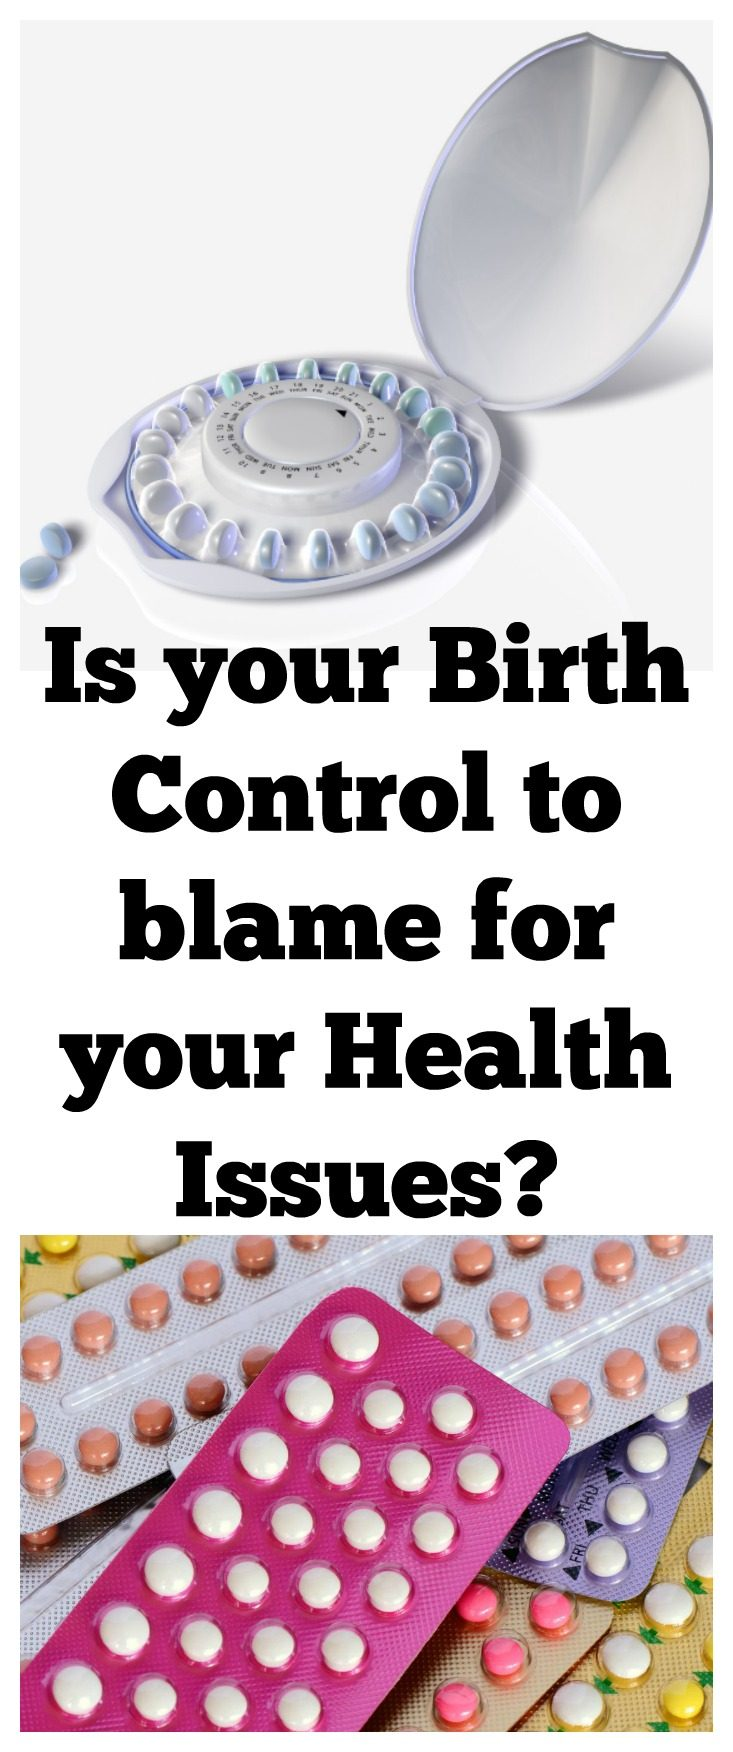 Hormones play an important role in weight management and health. Is your birth control to blame for your weight gain and health issues?